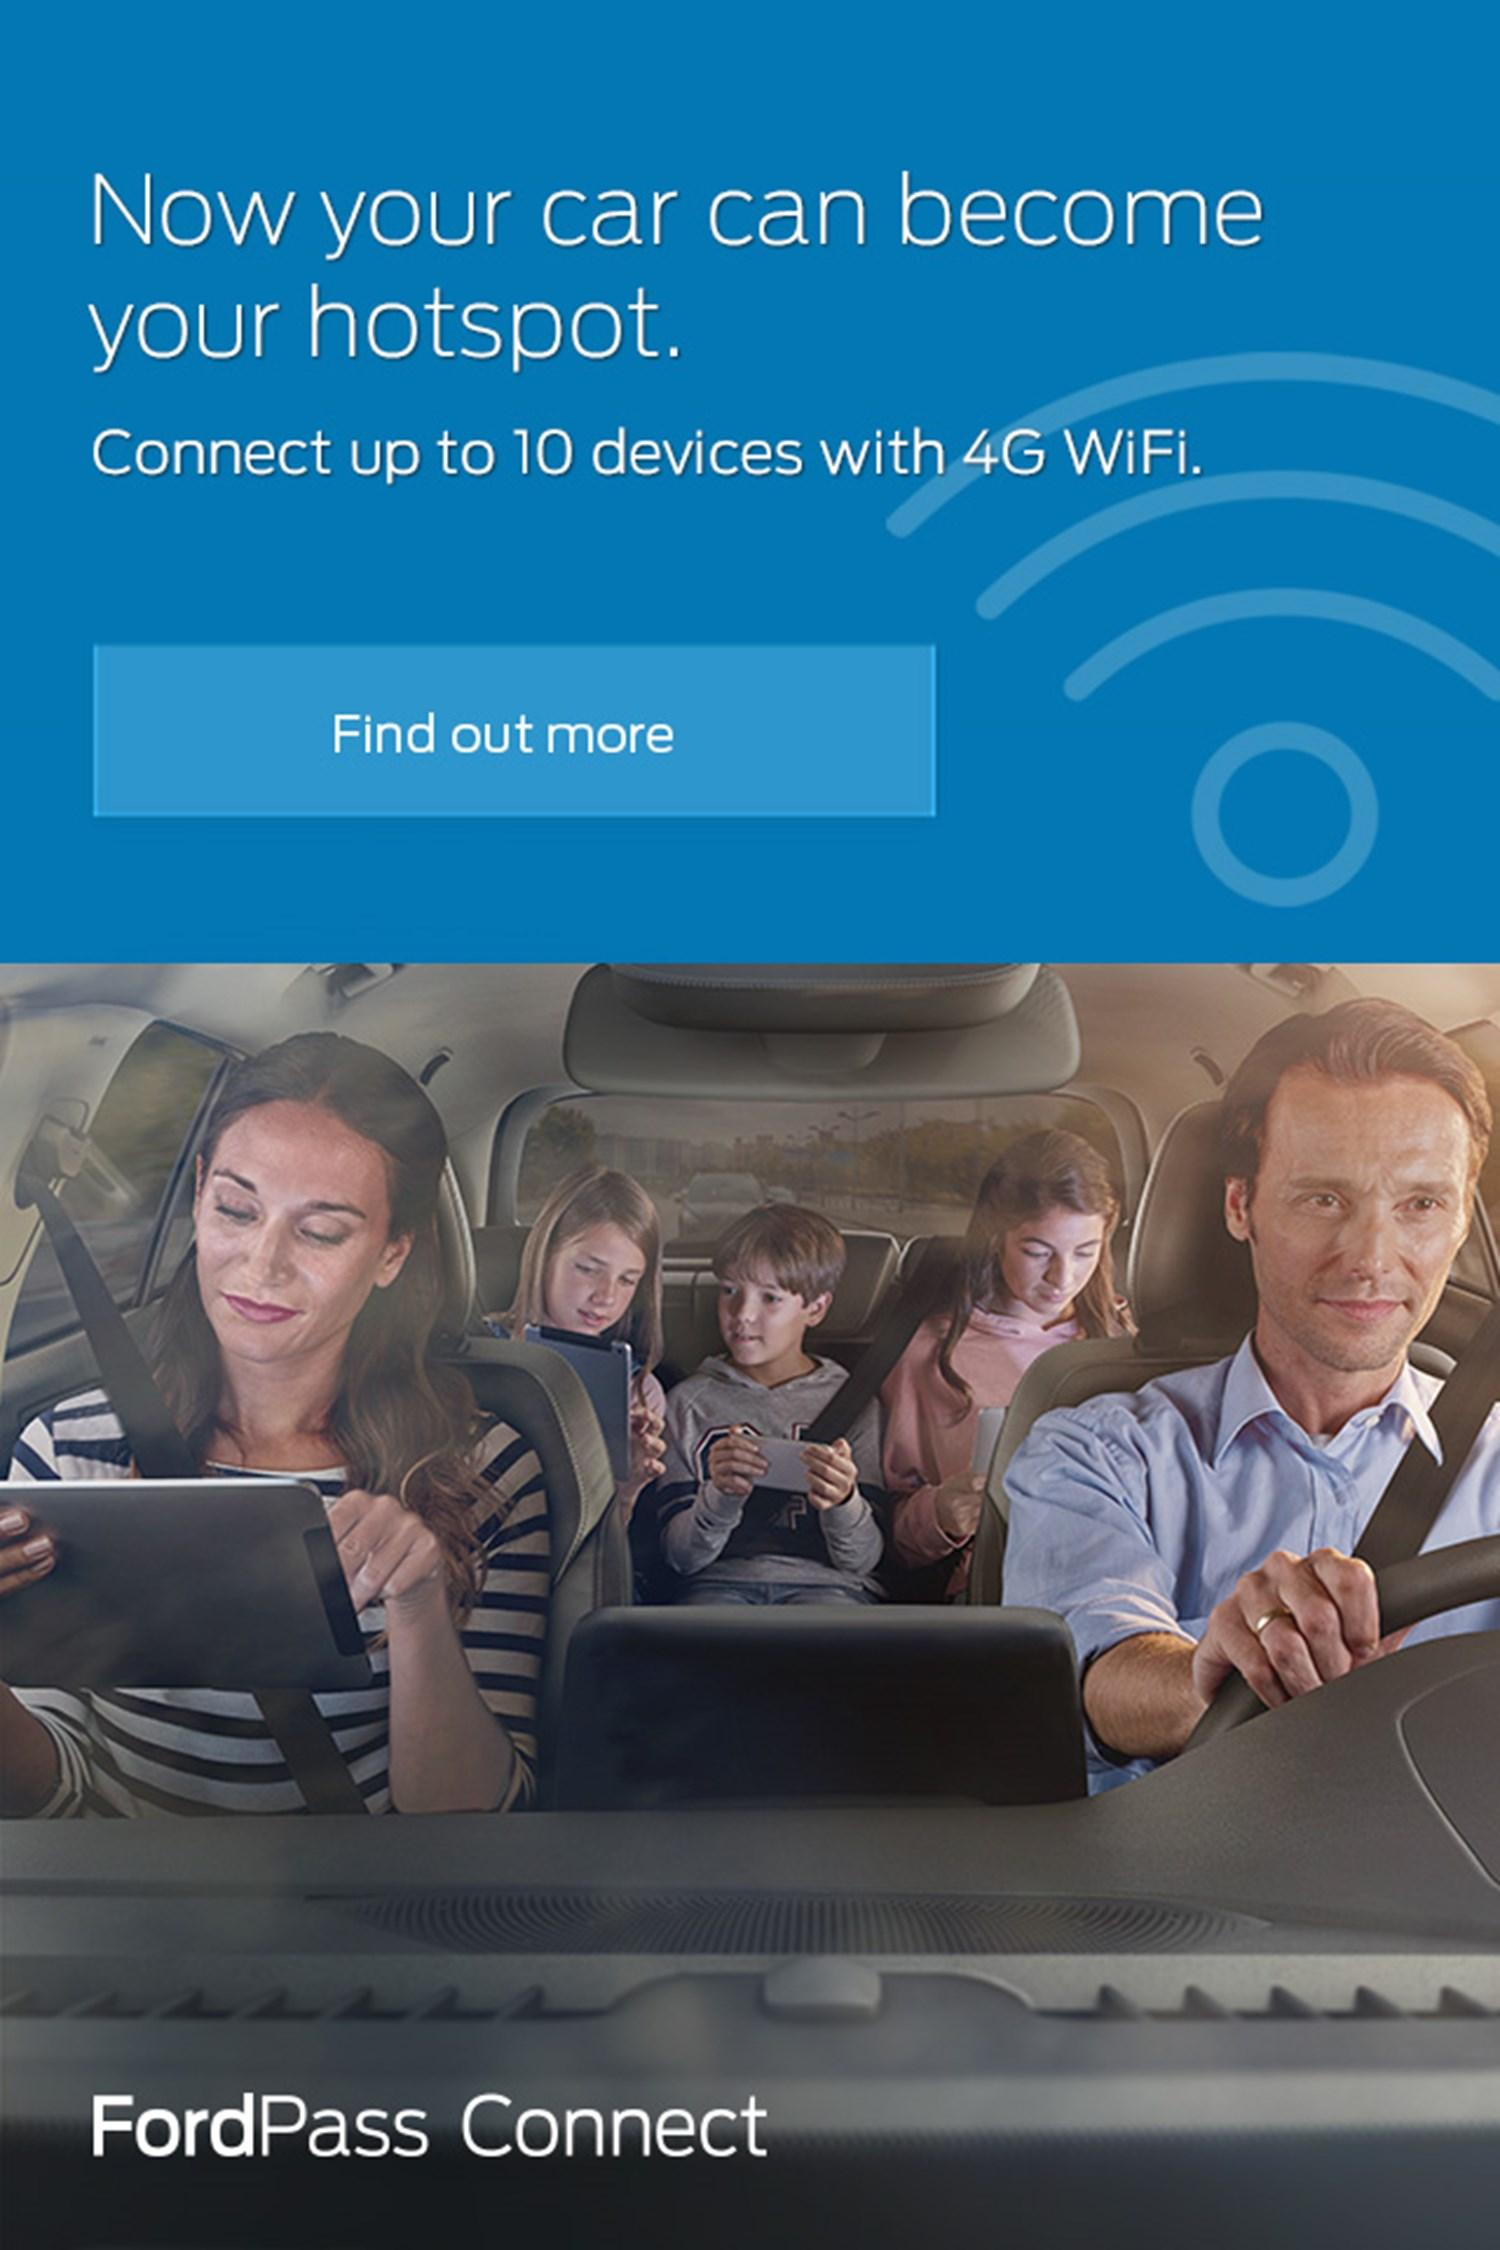 Now your car can become your hotspot